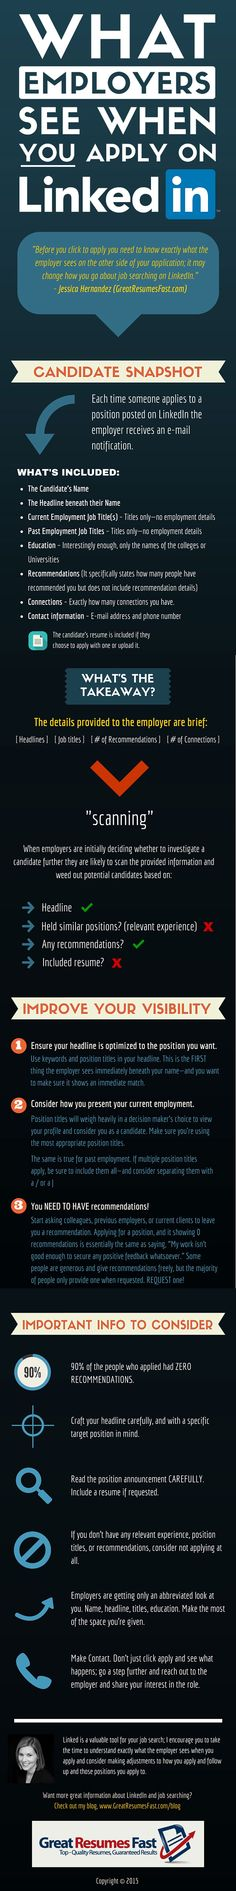 What Employers See When You Apply on LinkedIn [Infographic]